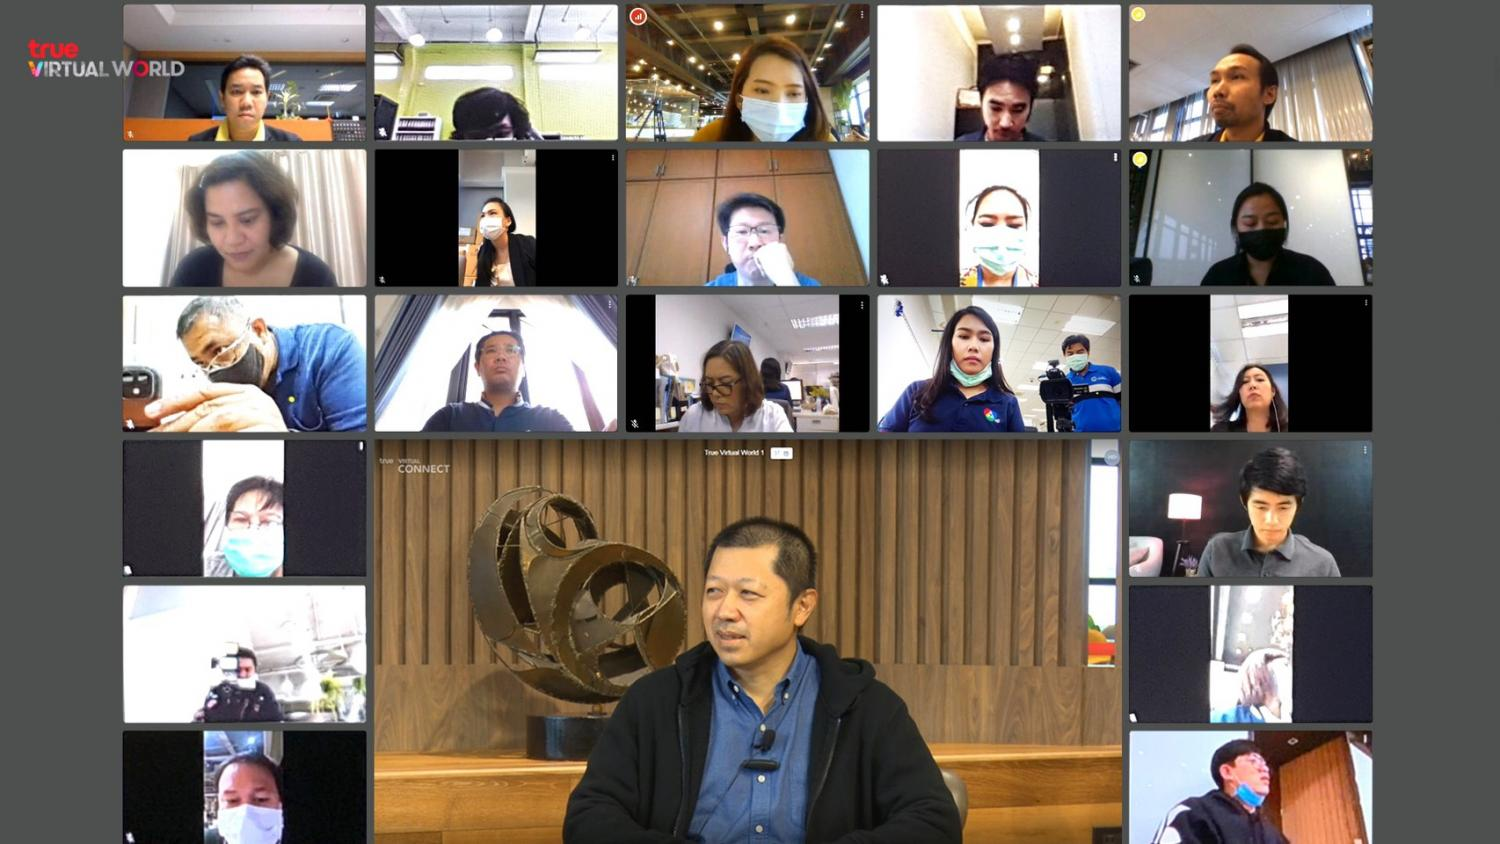 Mr Suphachai holds a video conference via the True Virtual World platform. The platform supports company networks and can hold an online meeting of up to 1,500 participants.